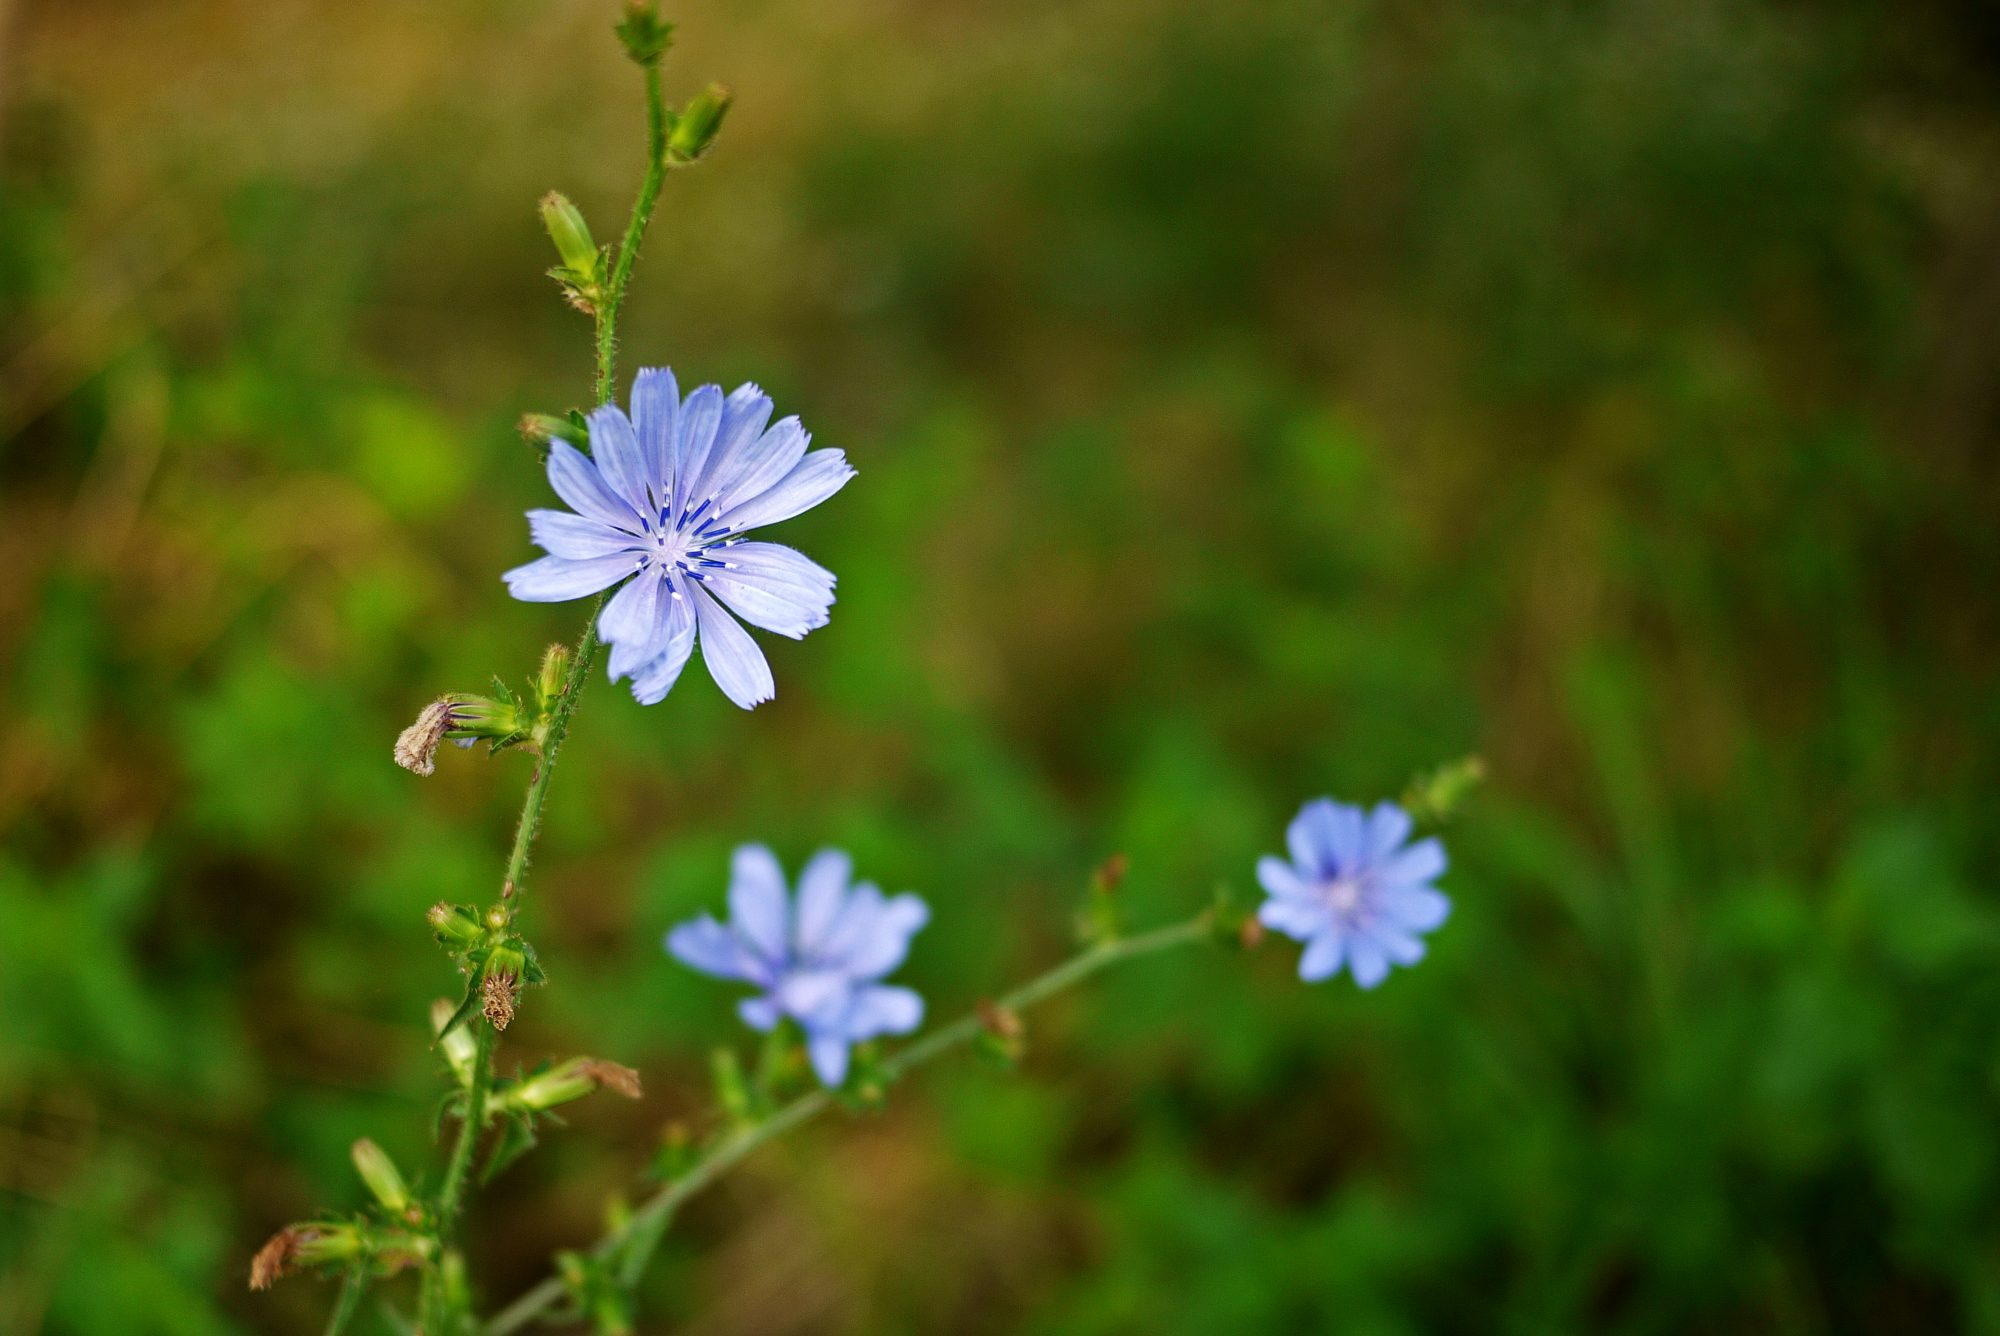 Chicory Plant Getty 10/17/19